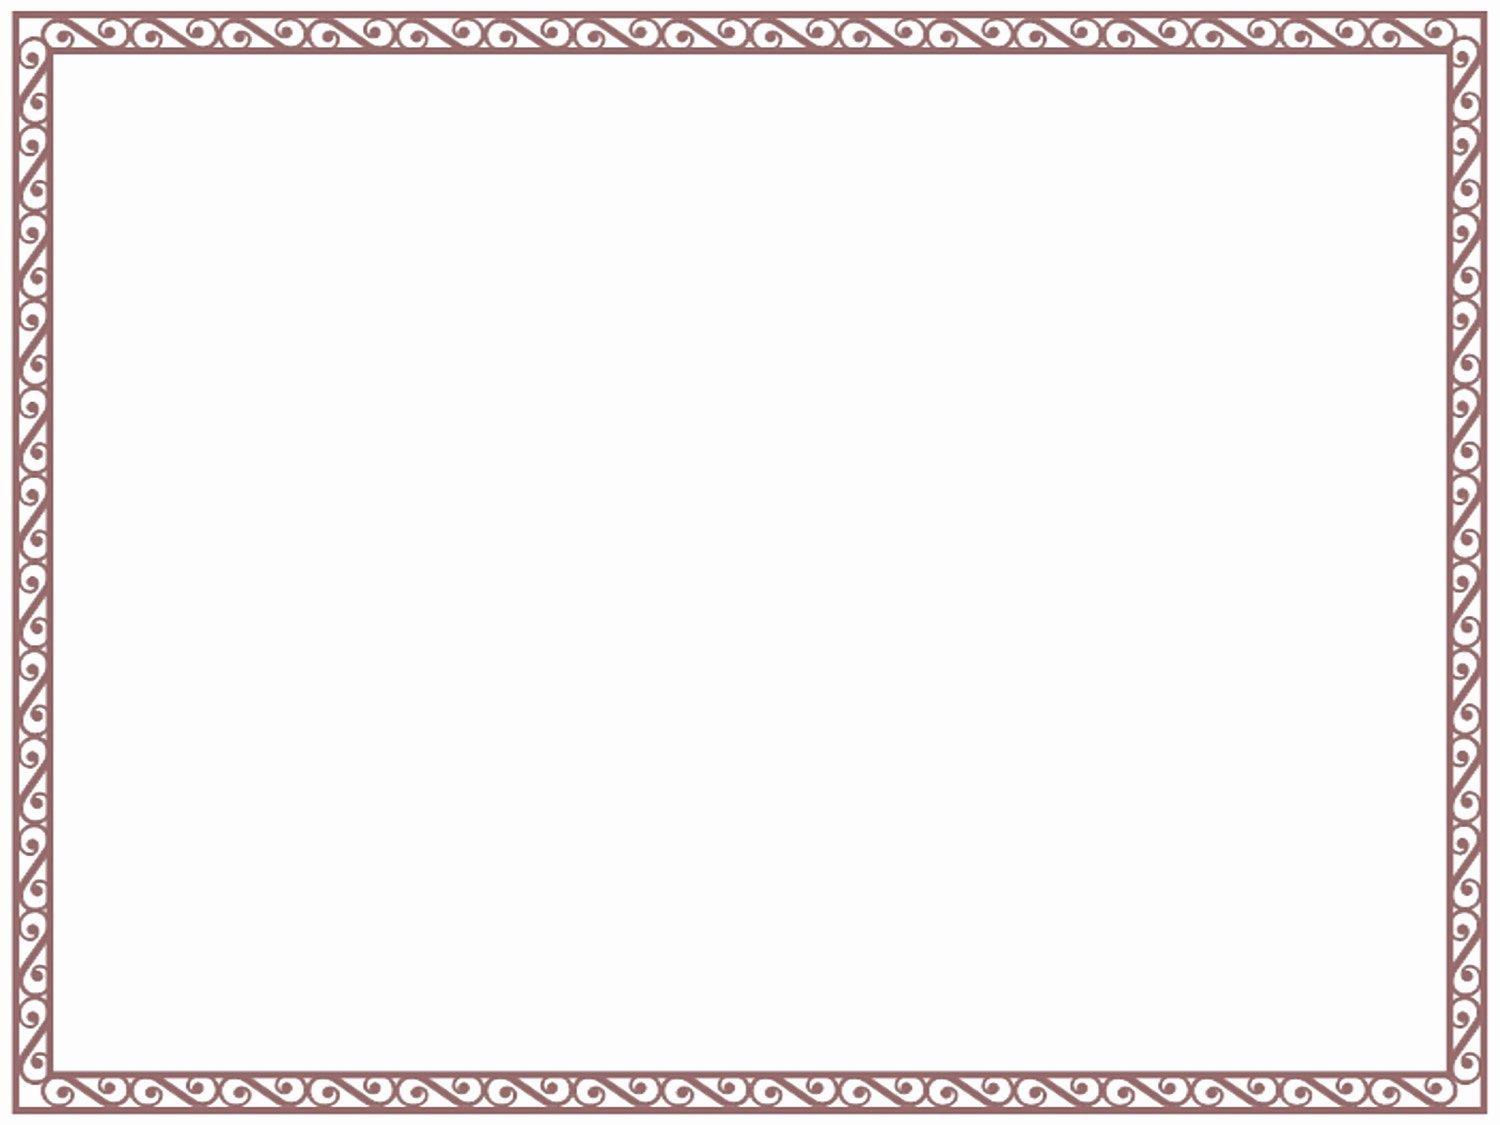 Border Template for Word Mughals